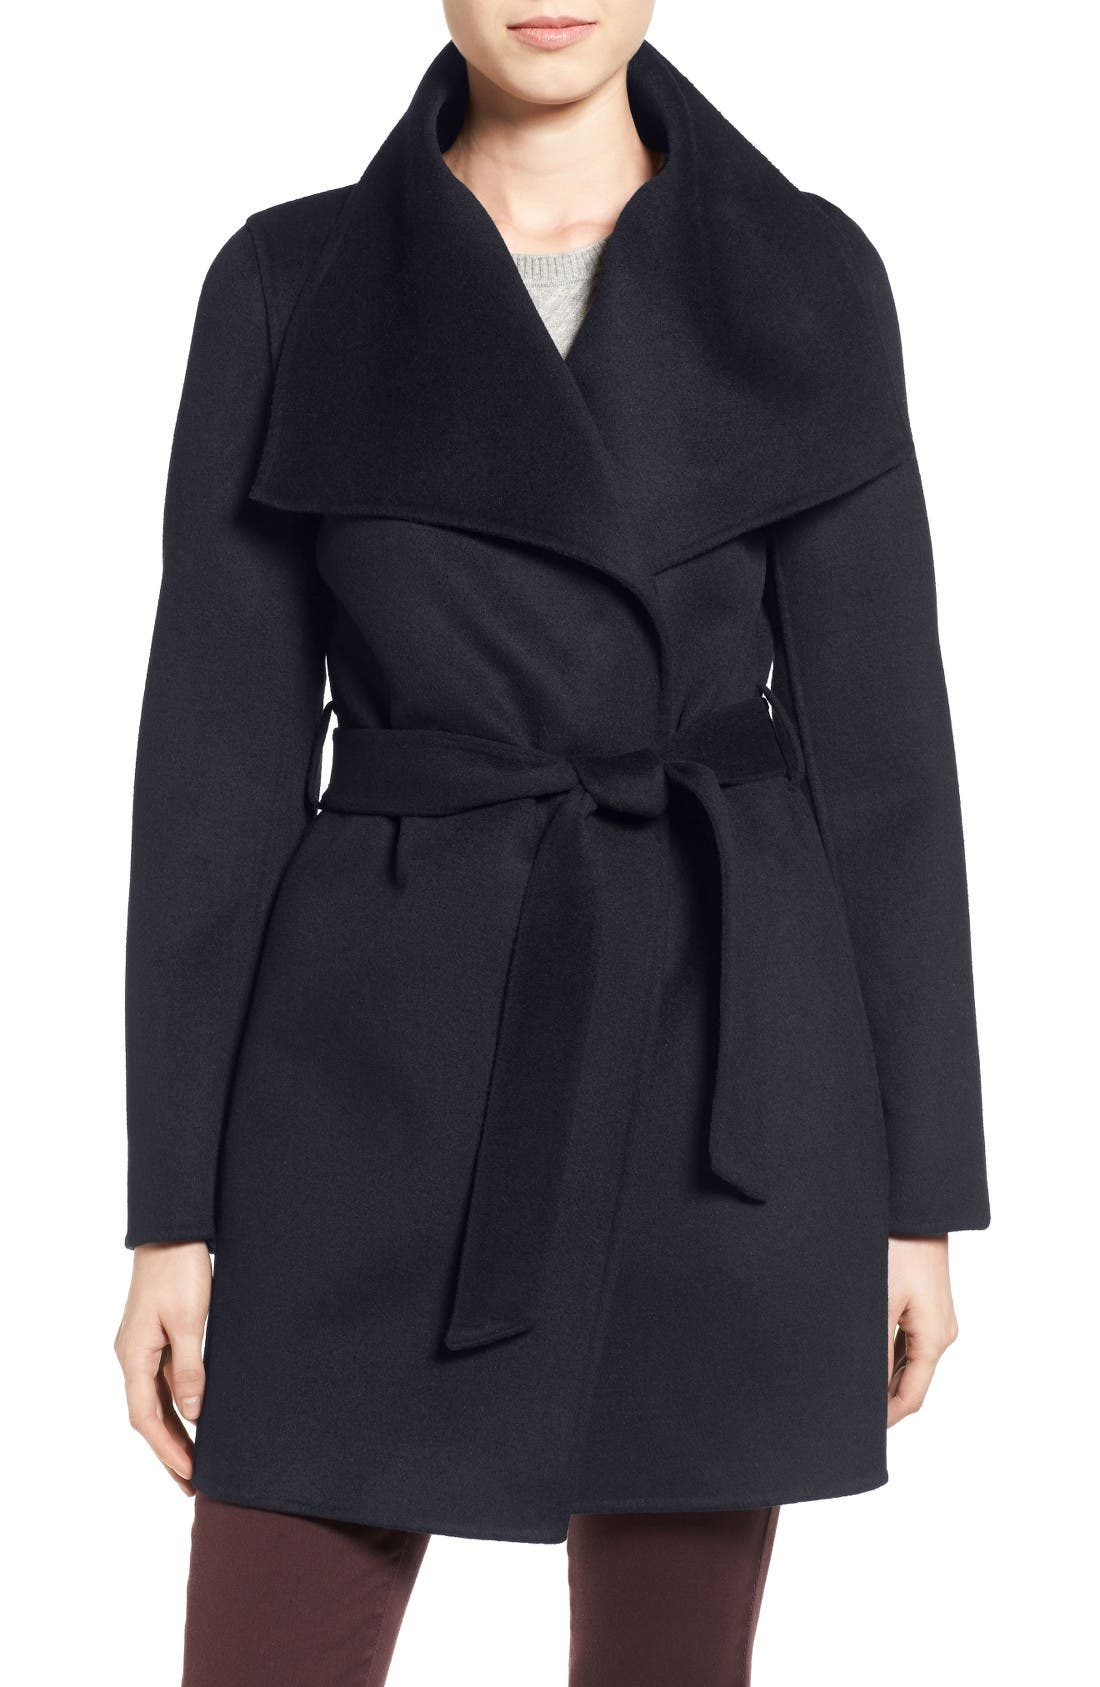 Alternate Image 1 Selected - Tahari 'Ella' Belted Double Face Wool Blend Wrap Coat (Regular & Petite)